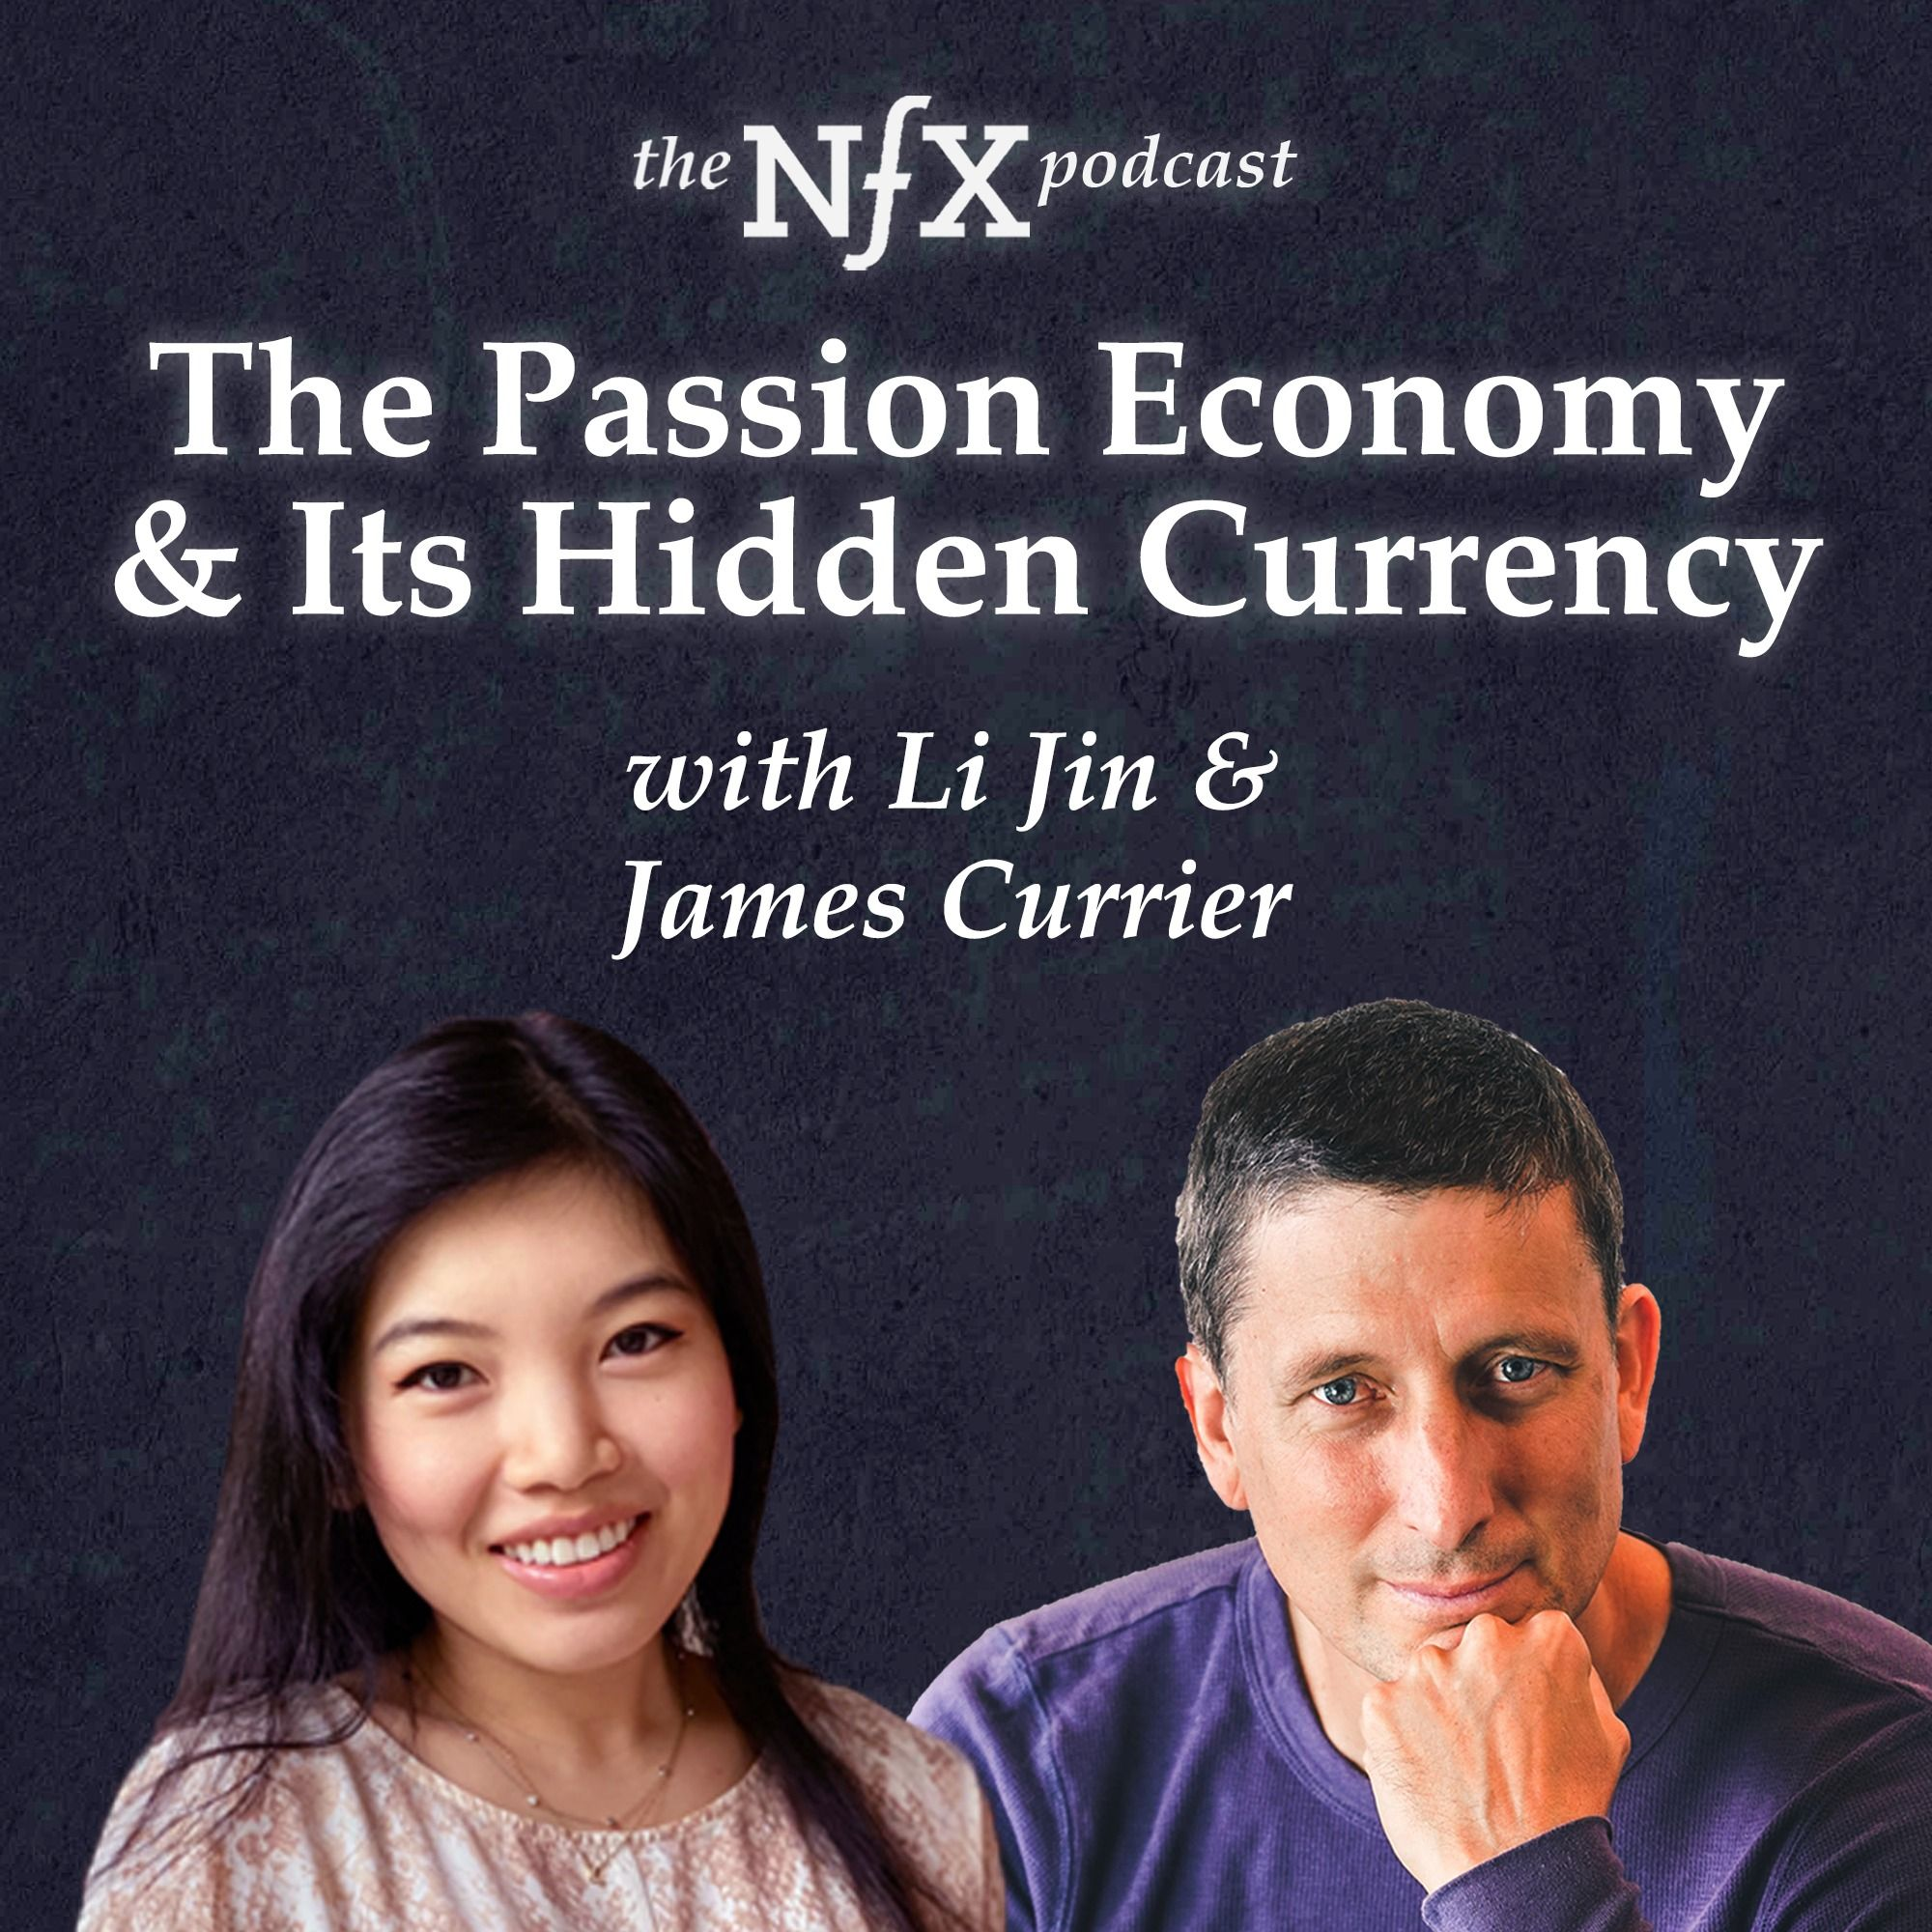 Li Jin on The Passion Economy & Its Hidden Currency